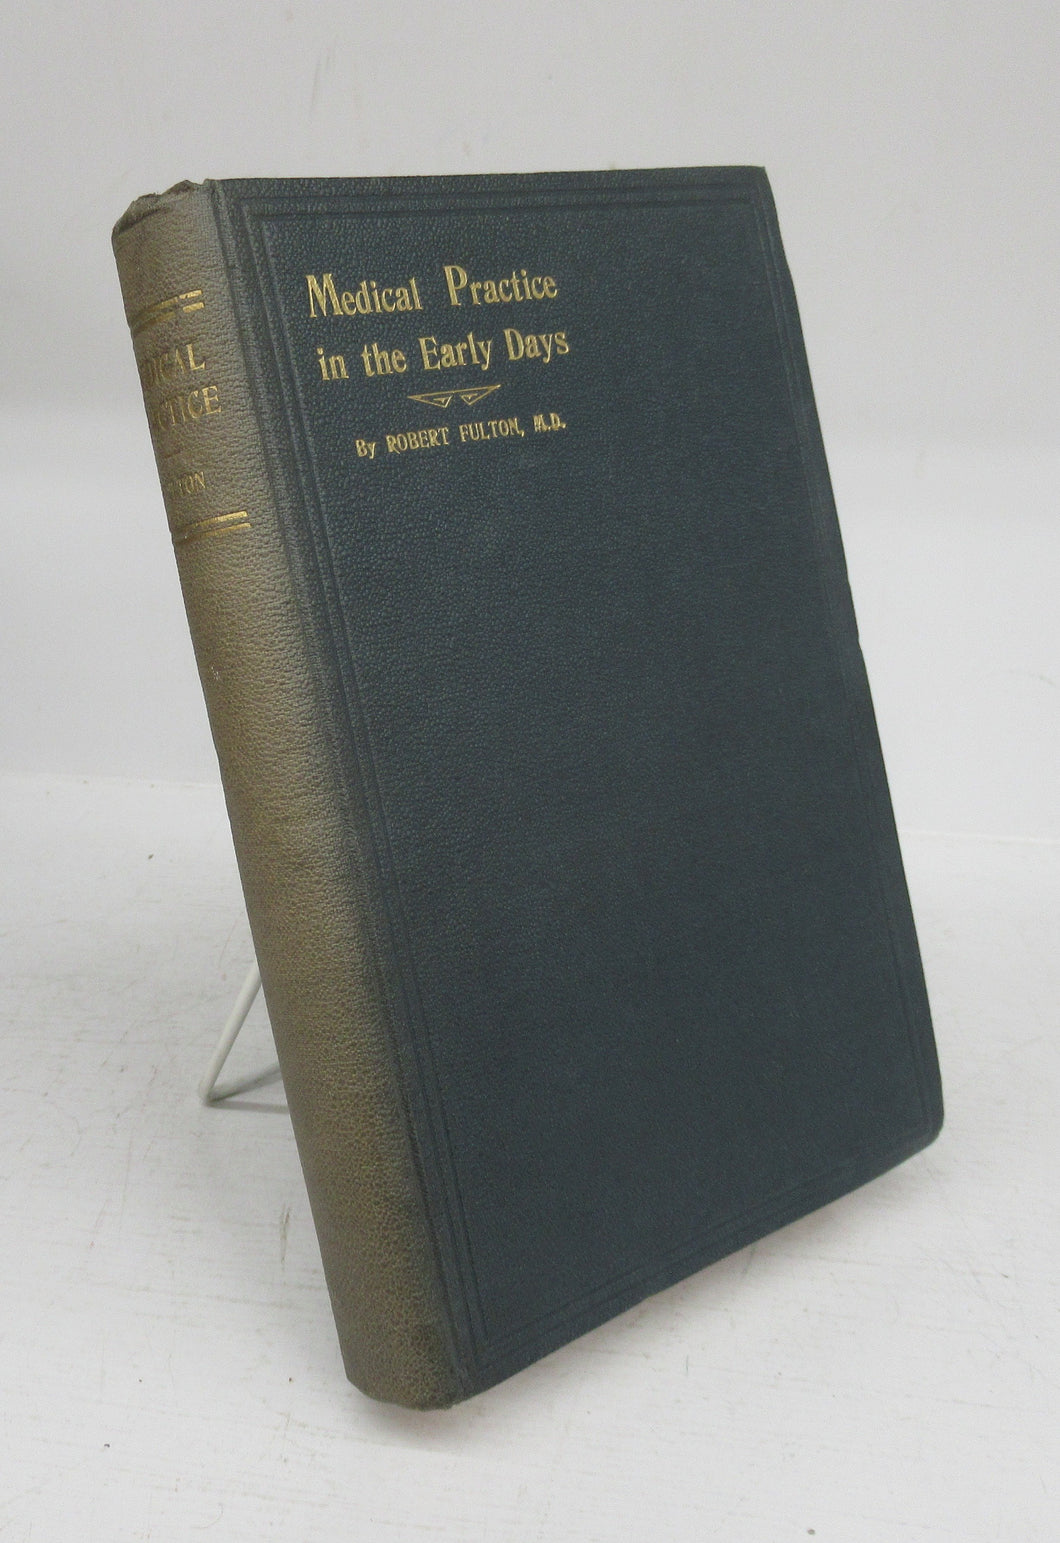 Medical Practice in the Early Days: A Description of the manner of life, trials, and difficulties of some of the Pioneer Doctors, of the places in which, and of the people among whom, they laboured